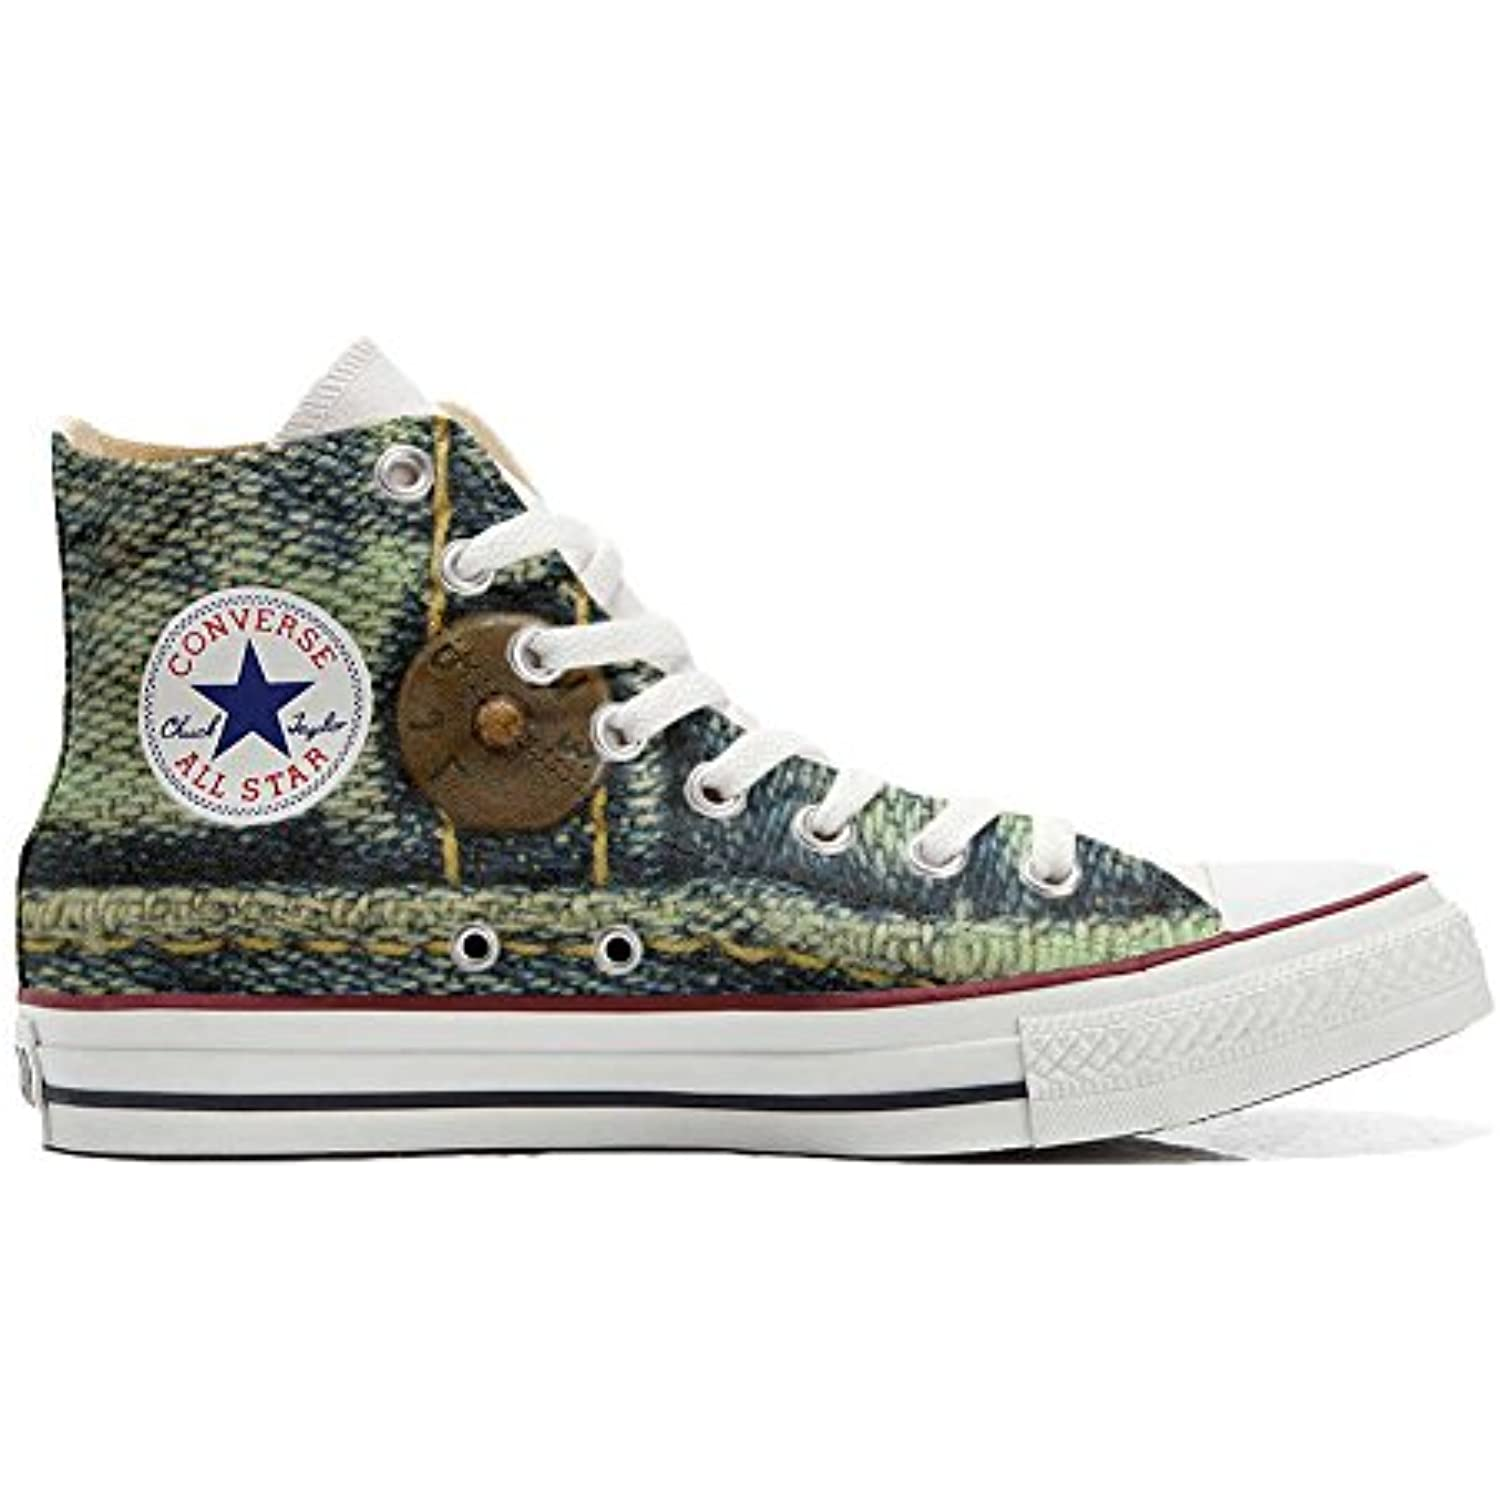 mys Chuck Taylor, Chaussons Montants Montants Montants Femme - B01N9SMGA8 - f328ae